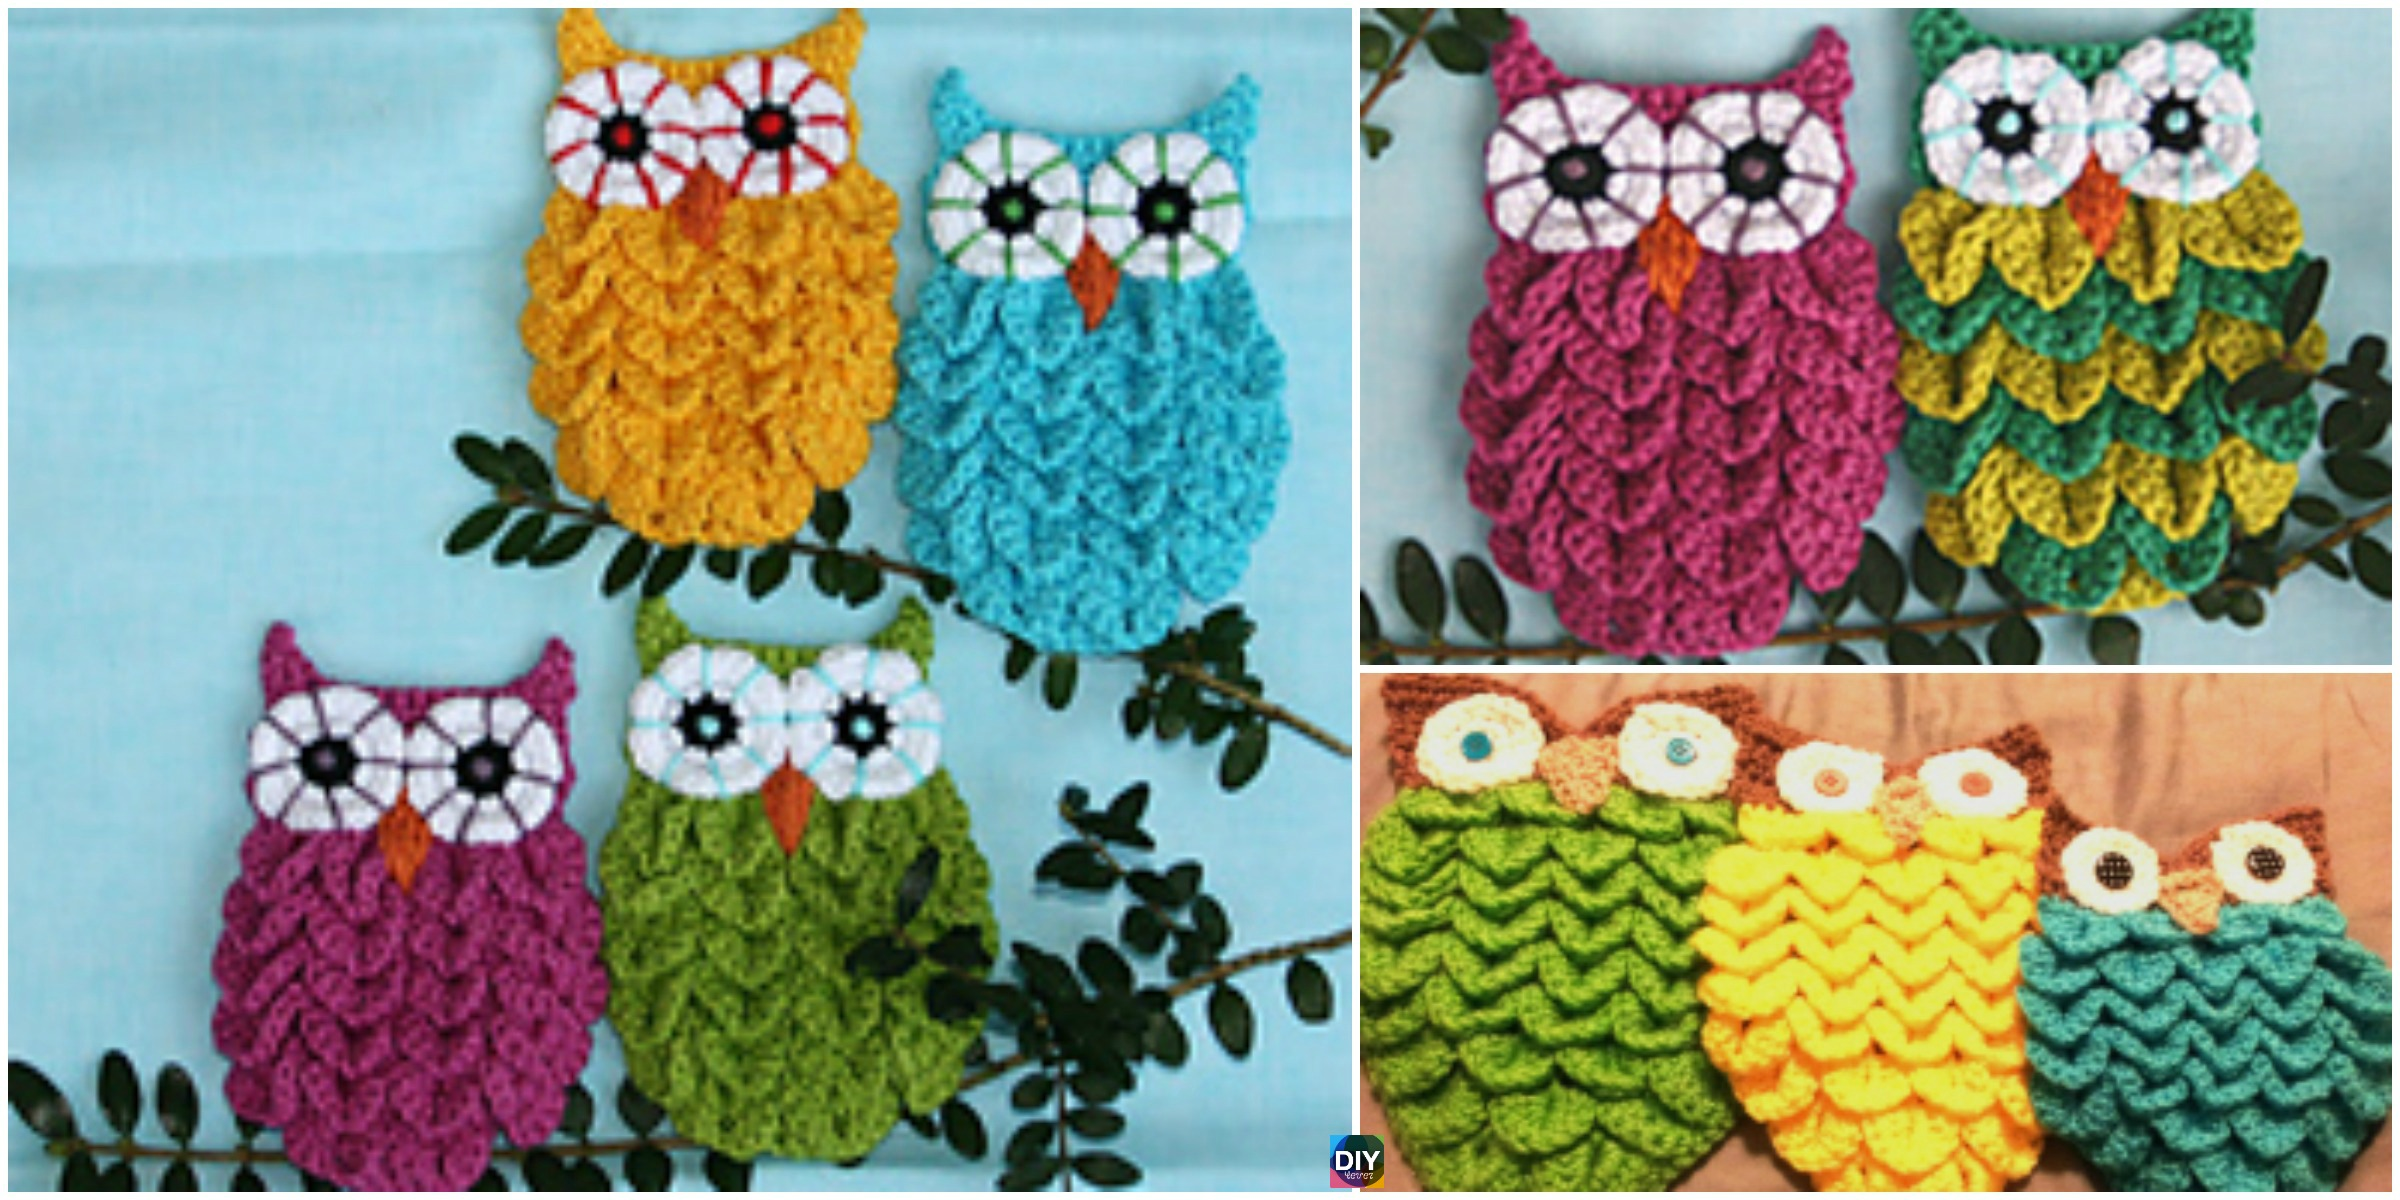 Crochet Crocodile Stitch Owls  – Free & Paid Pattern &Video